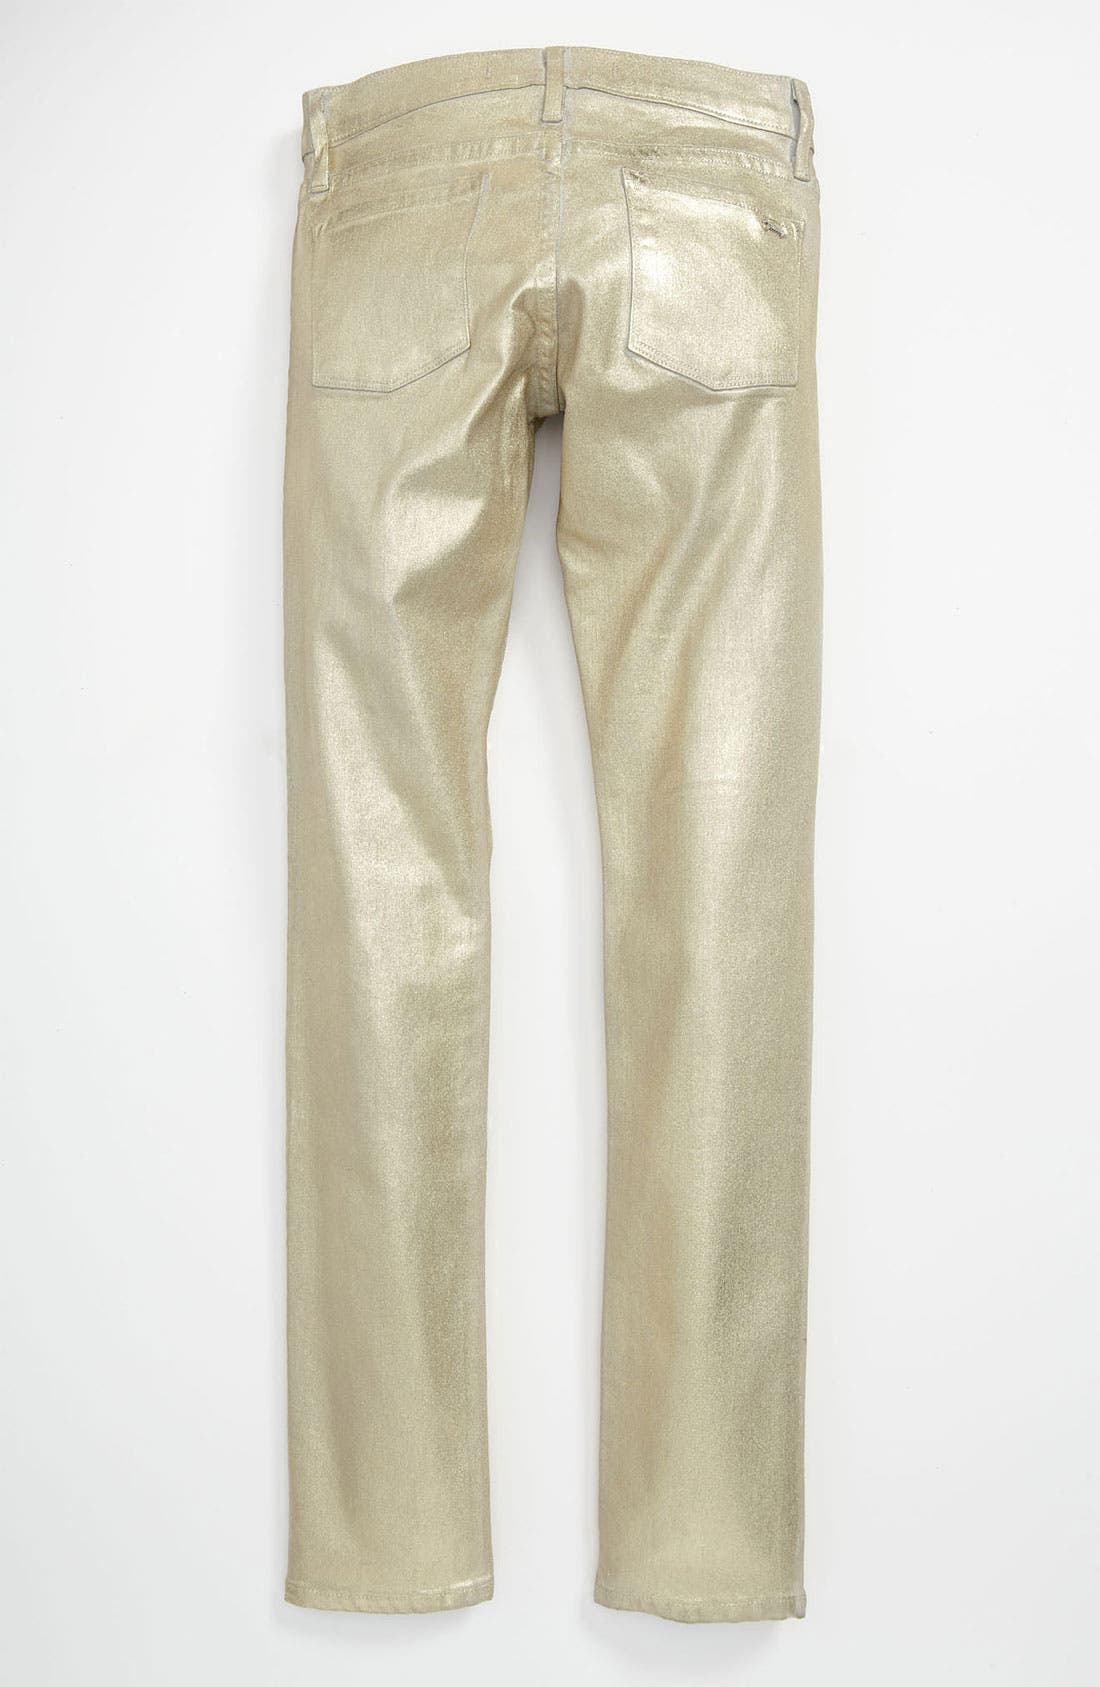 Main Image - Juicy Couture Metallic Skinny Pants (Little Girls & Big Girls)